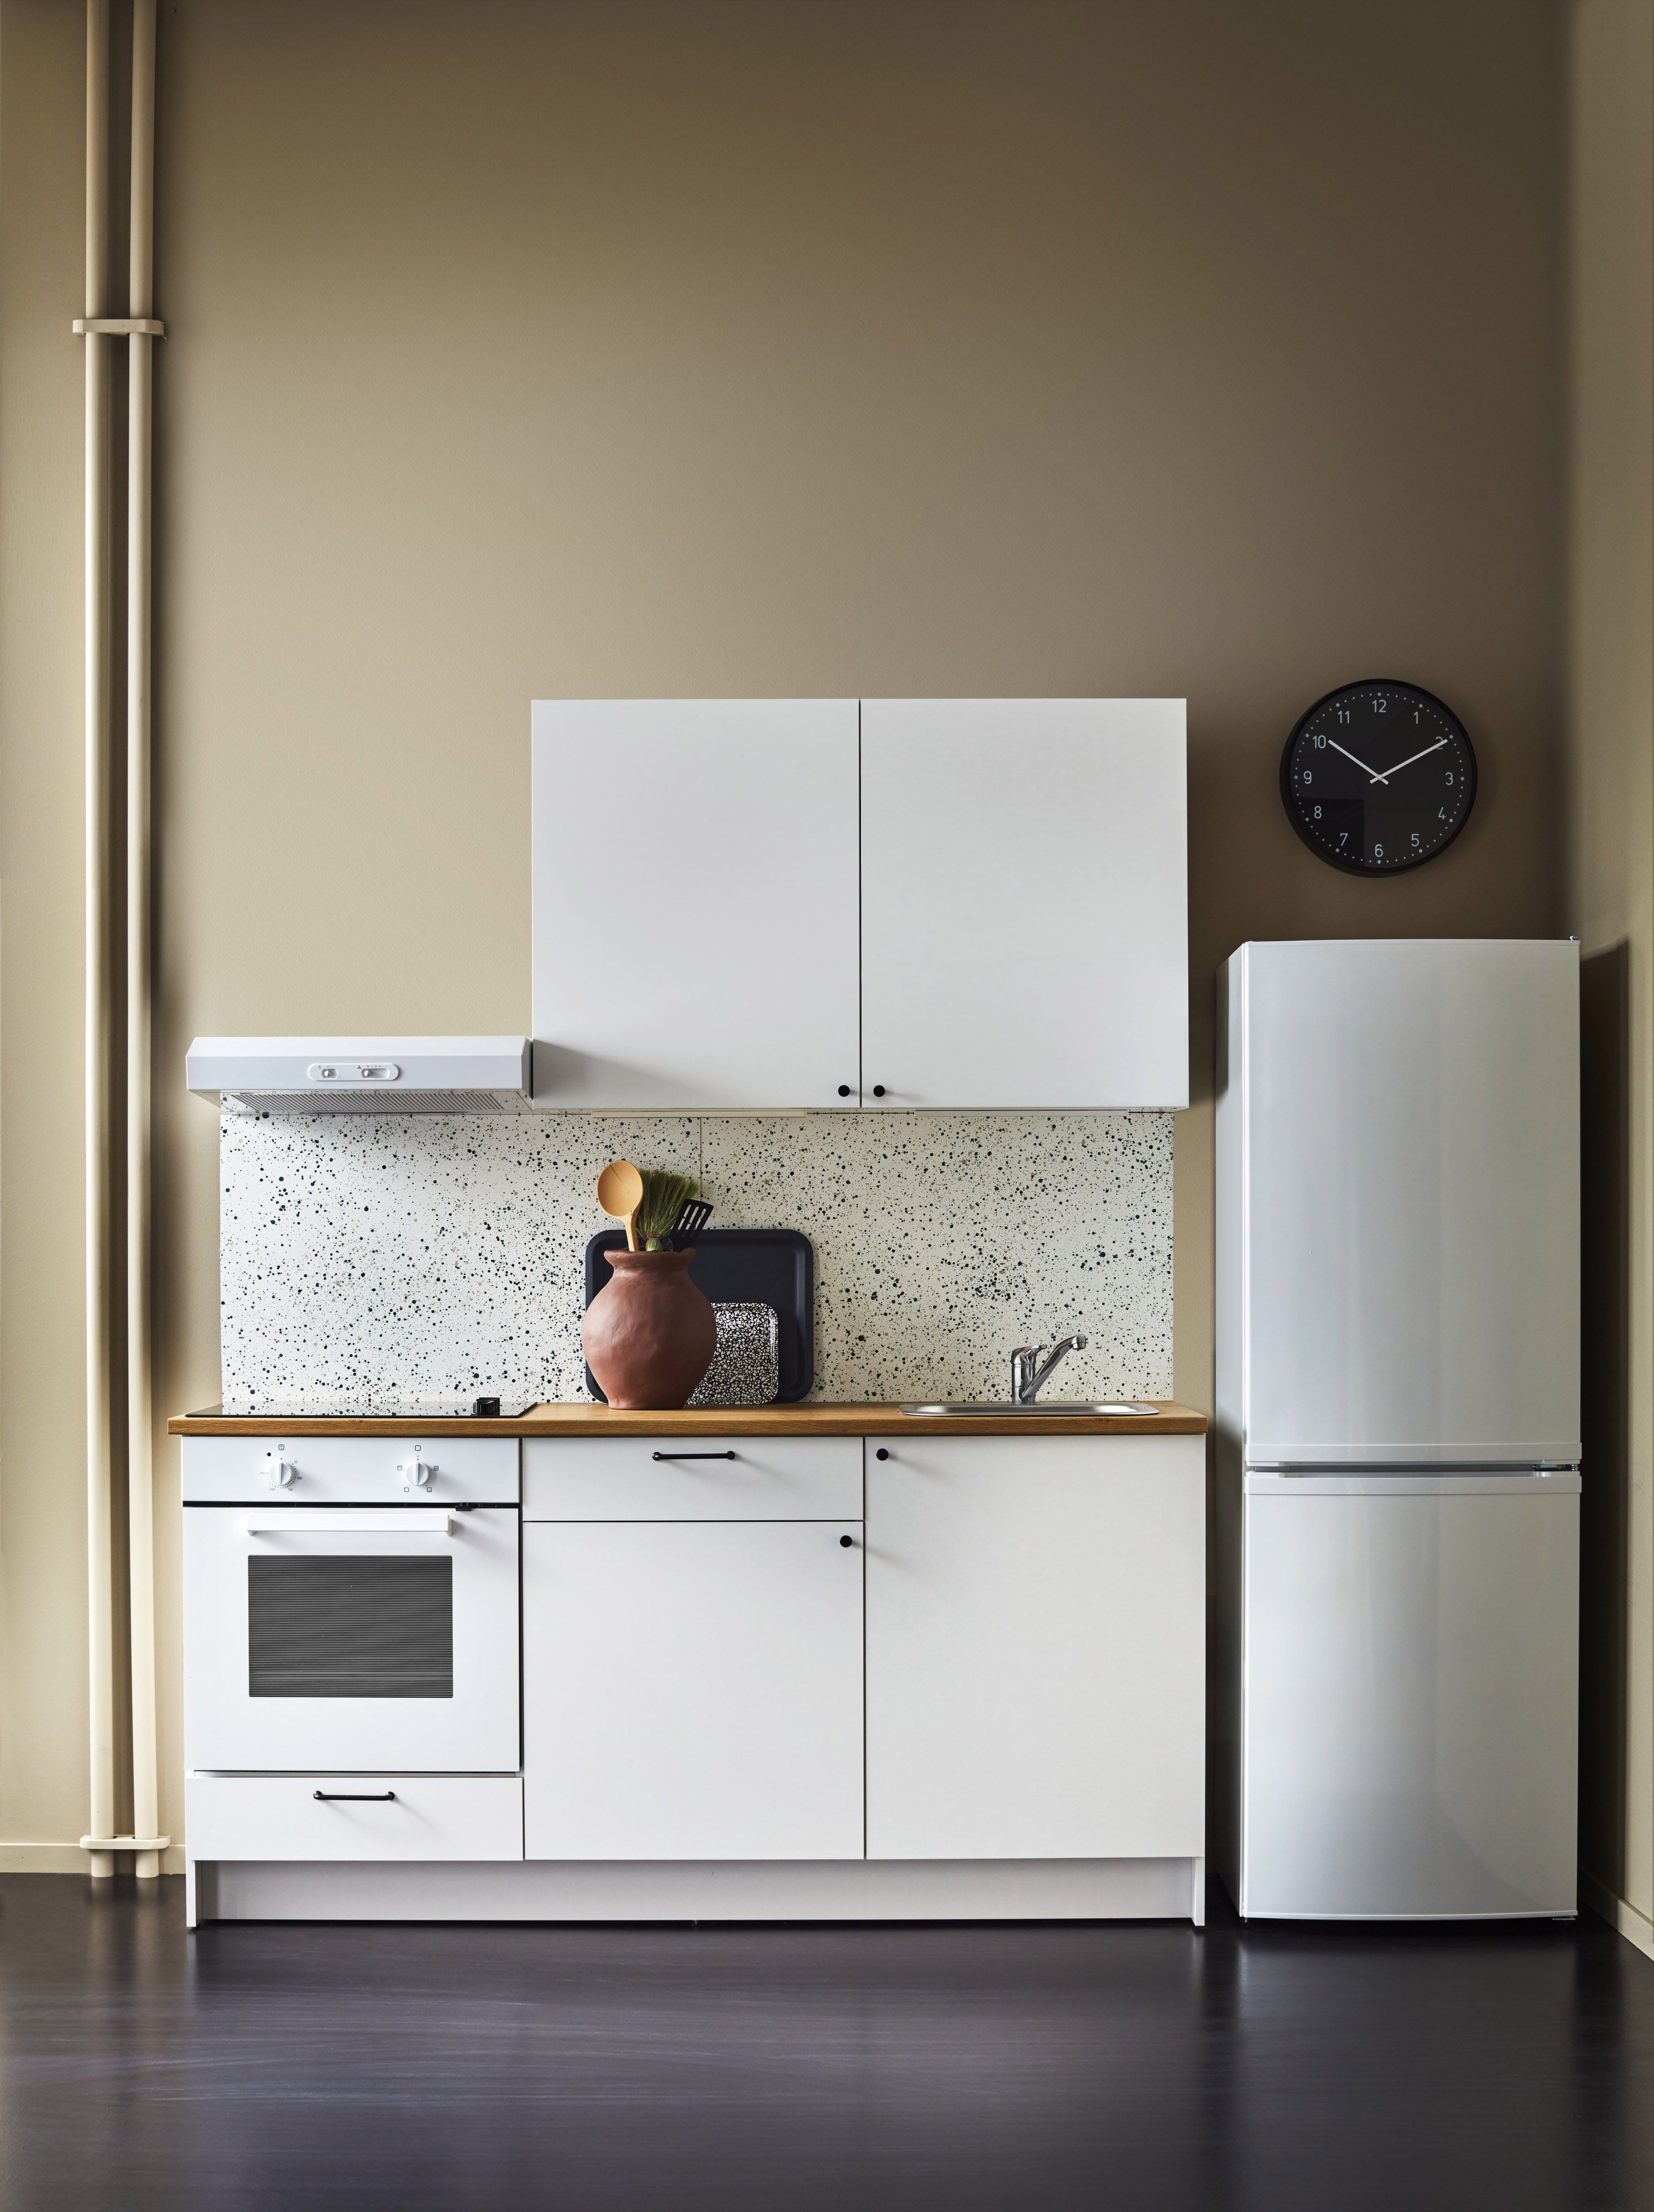 Knoxhult Keuken Wit In 2019 Kitchens Ikea Kitchen Kitchen Redo